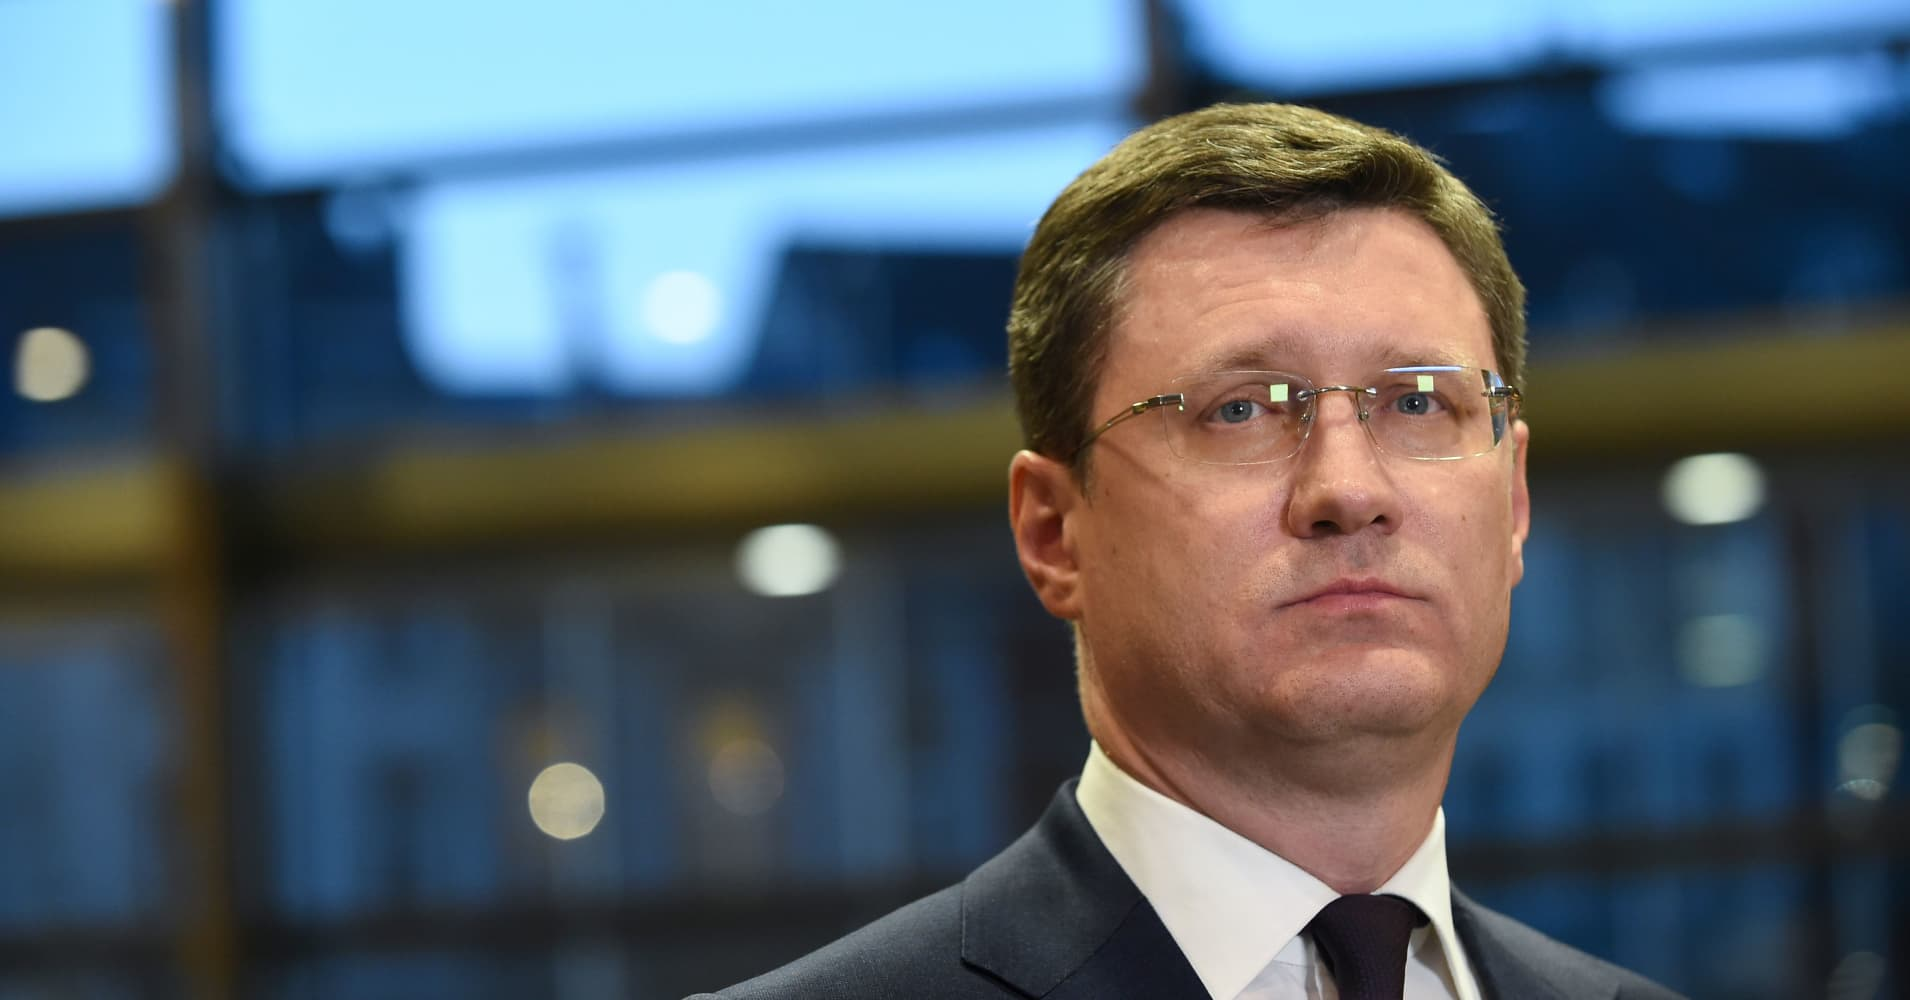 Russia will be fully compliant with OPEC-led supply cuts by April, energy minister says